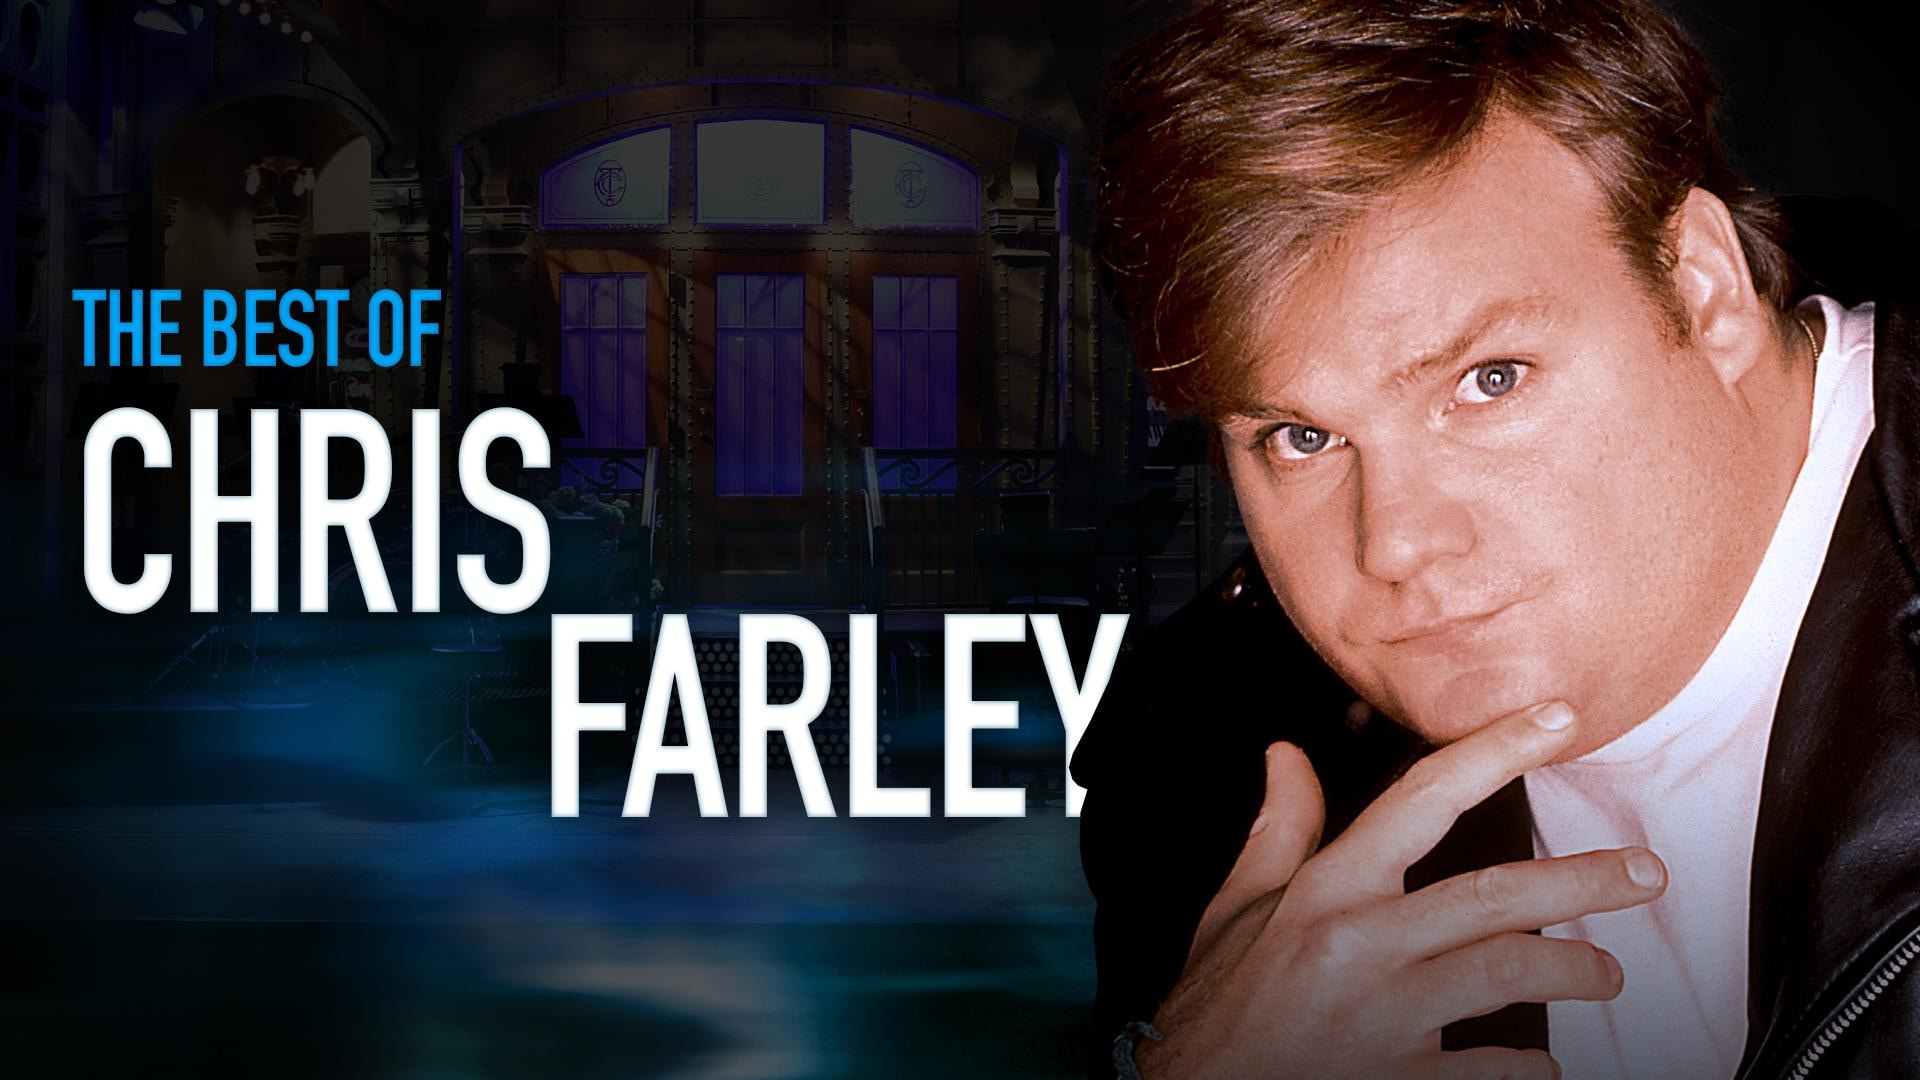 The Best of Chris Farley